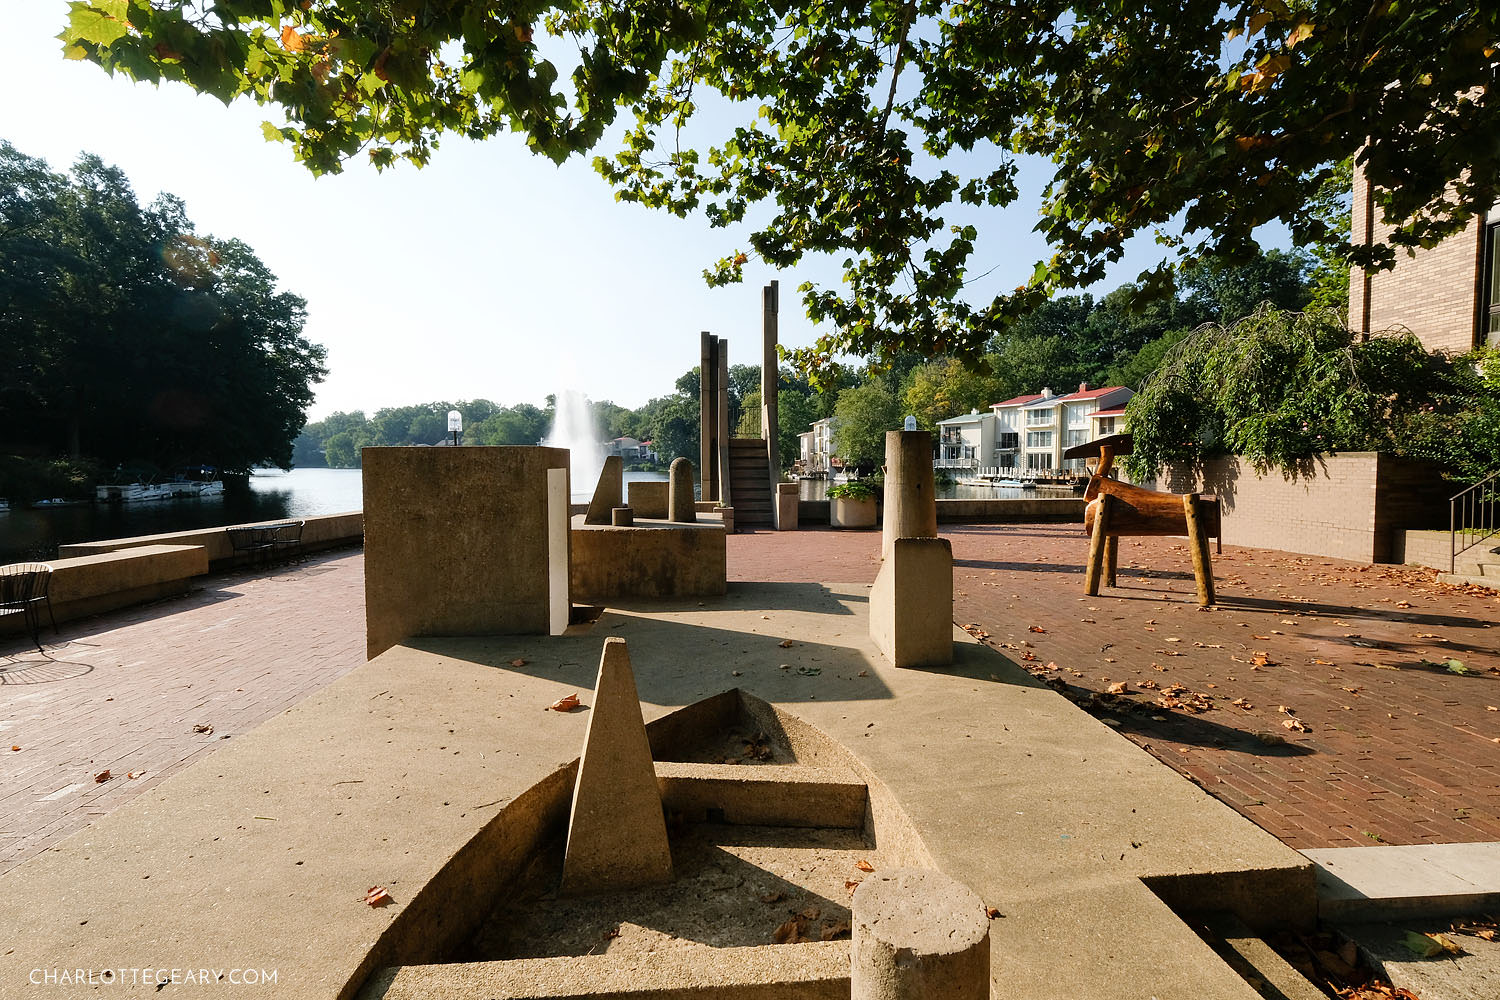 The Sun Boat and Wooden Horse at Lake Anne Plaza